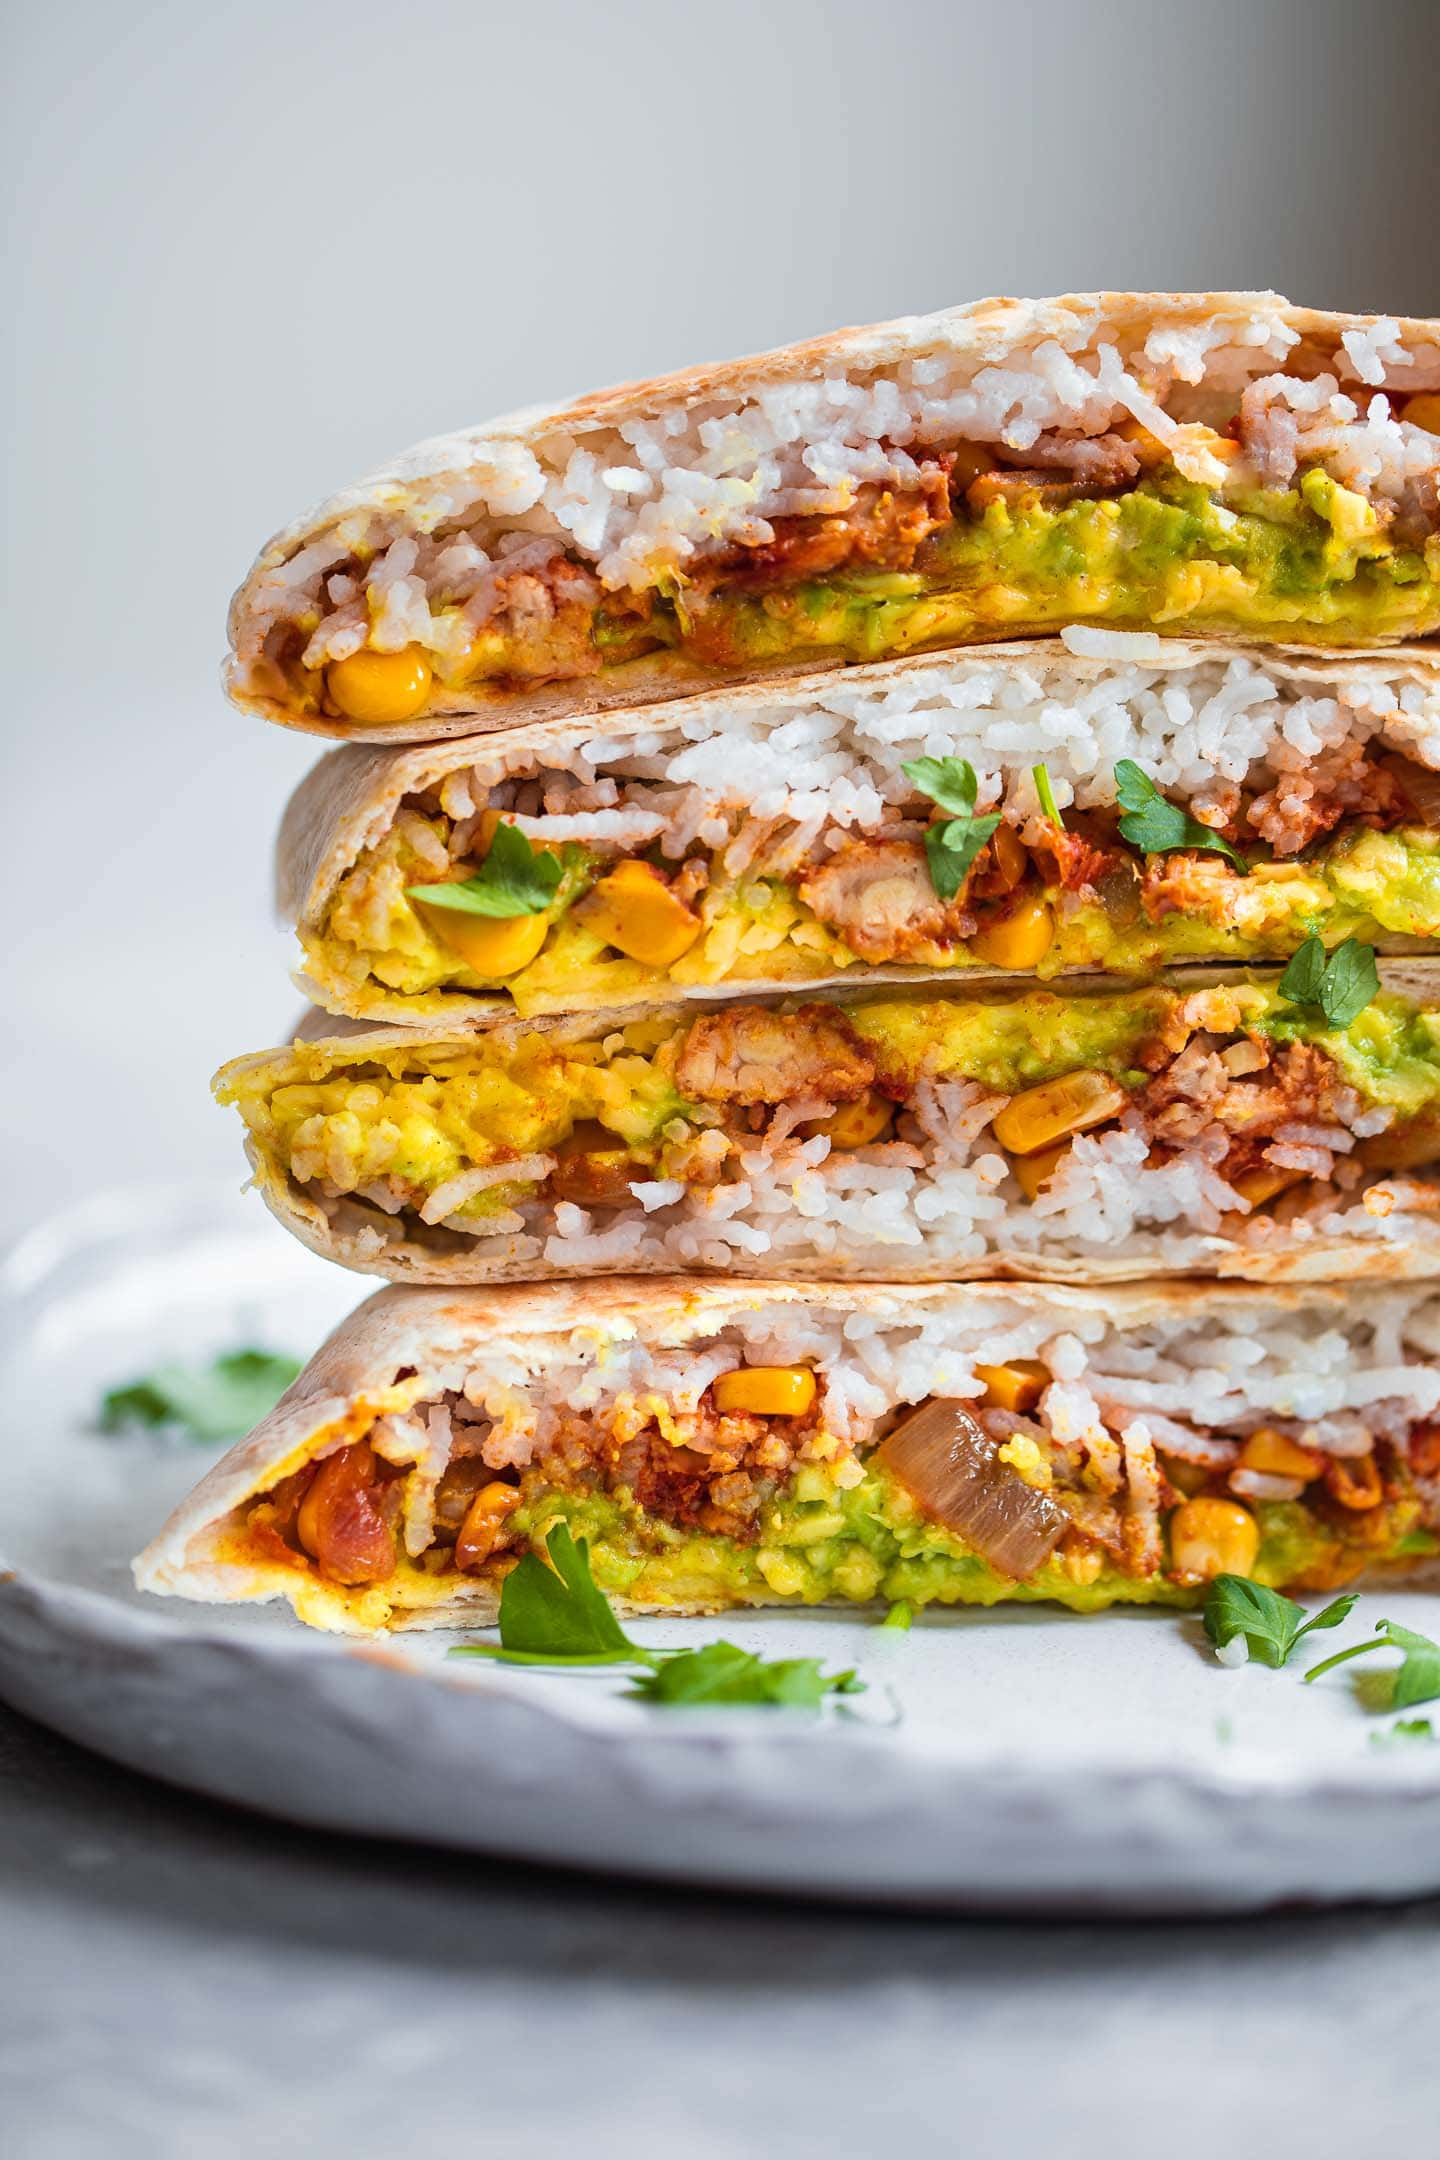 Vegan Crunchwrap with dairy-free nacho cheese on a plate